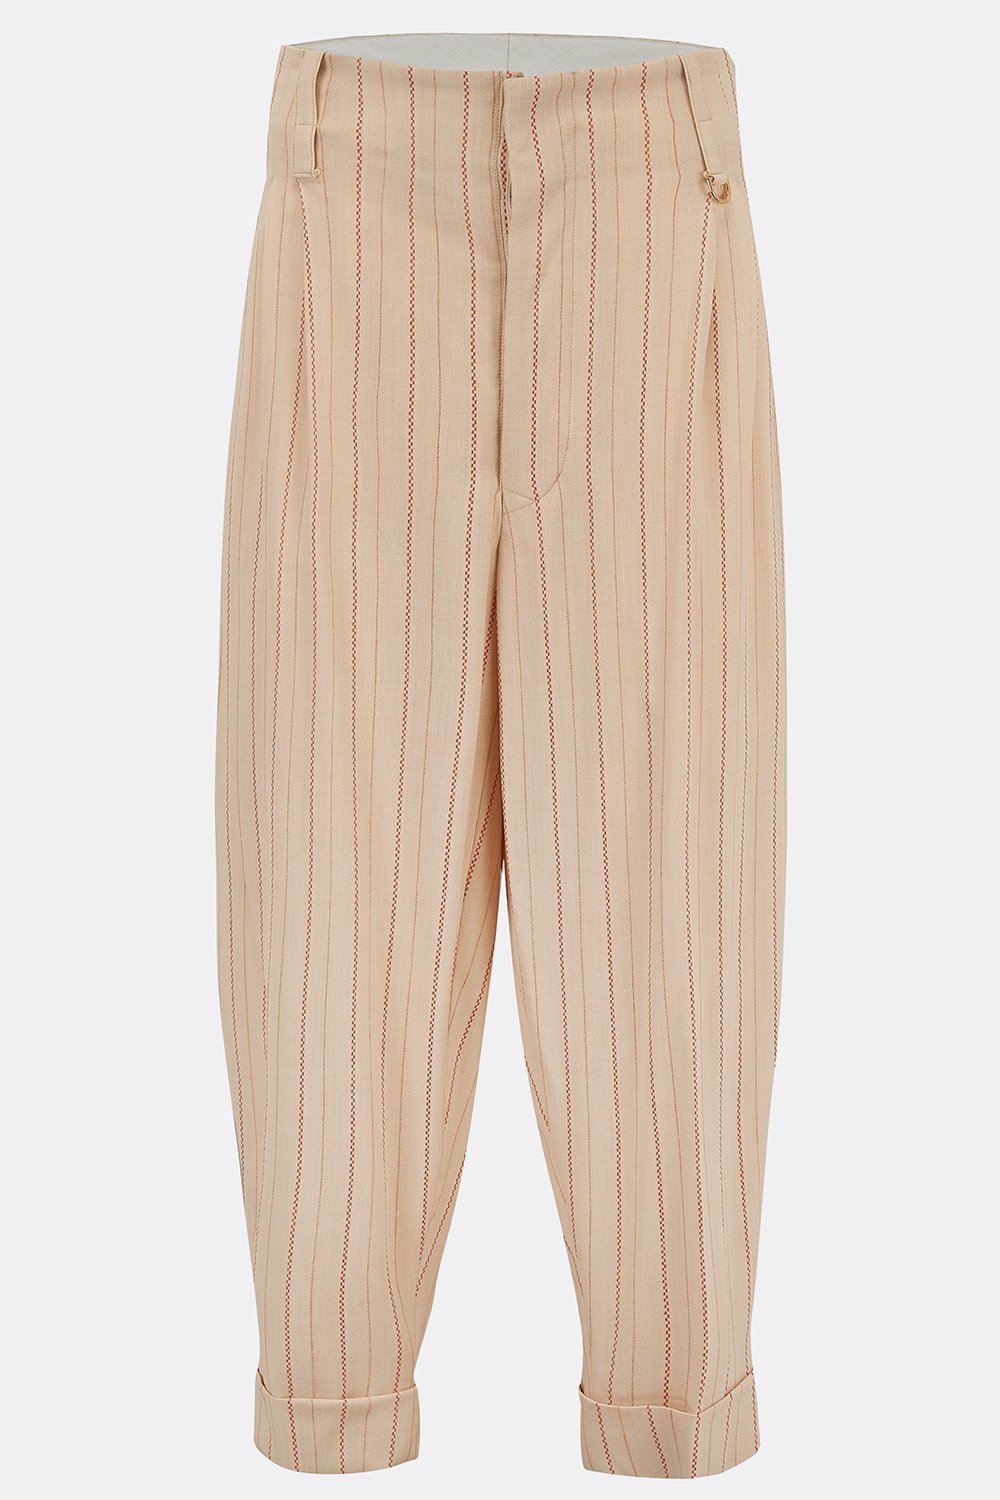 DILLINGER TROUSERS IN CREAM AND ORANGE STRIPE-menswear-A Child Of The Jago